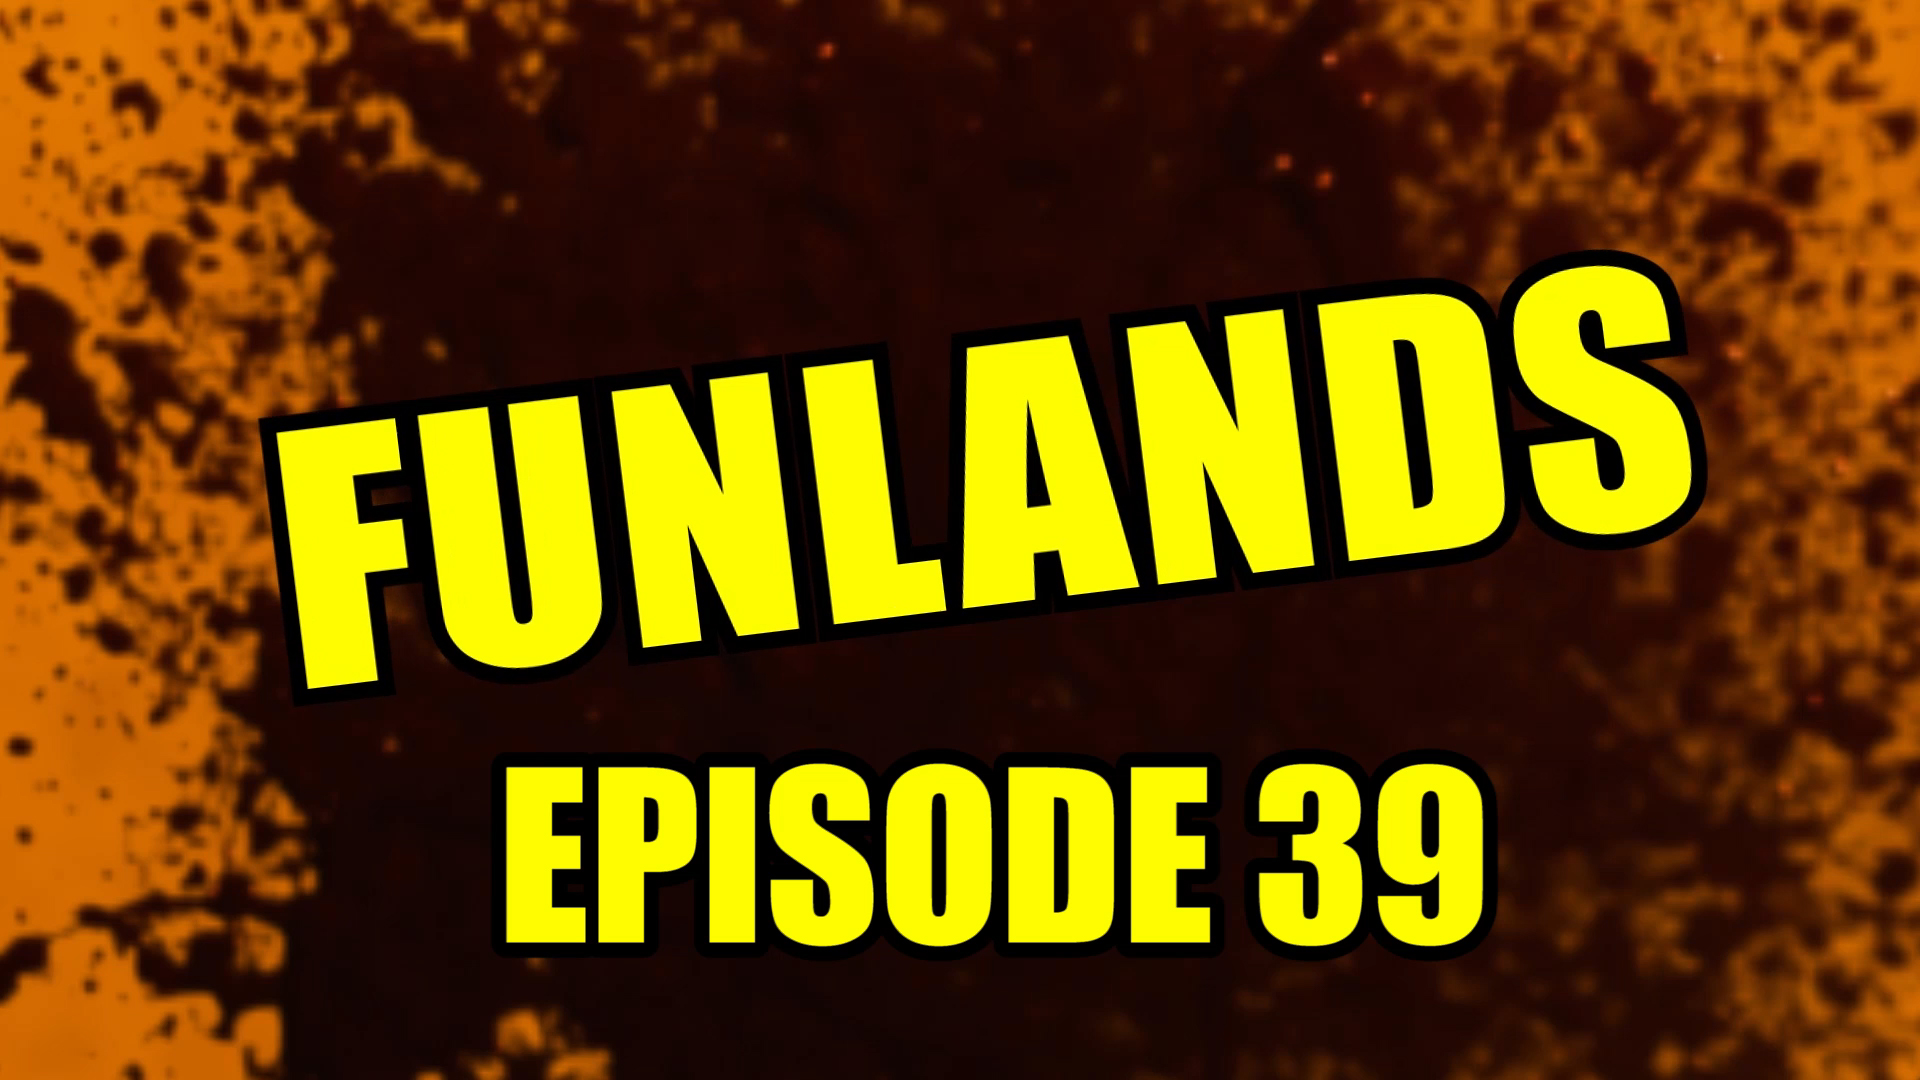 Funlands Episode 39.jpg